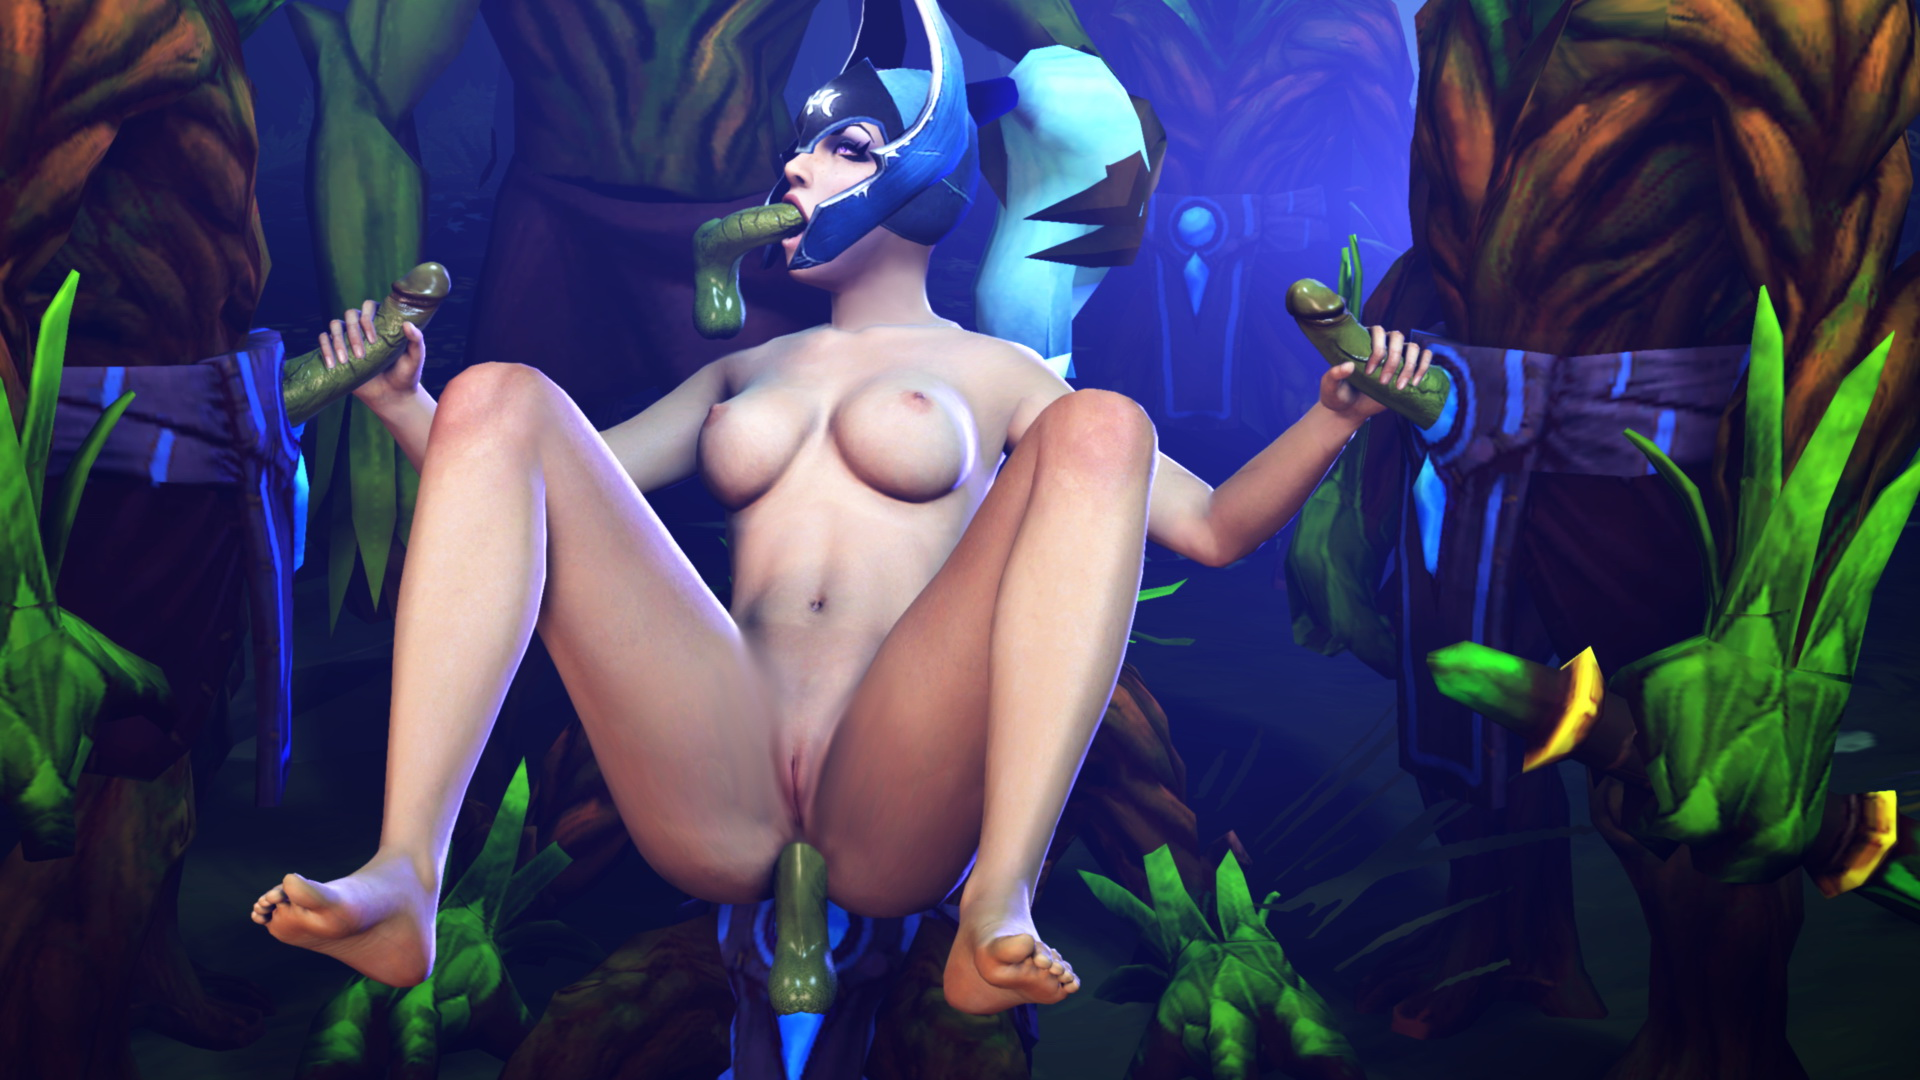 Dota sex arts erotic images